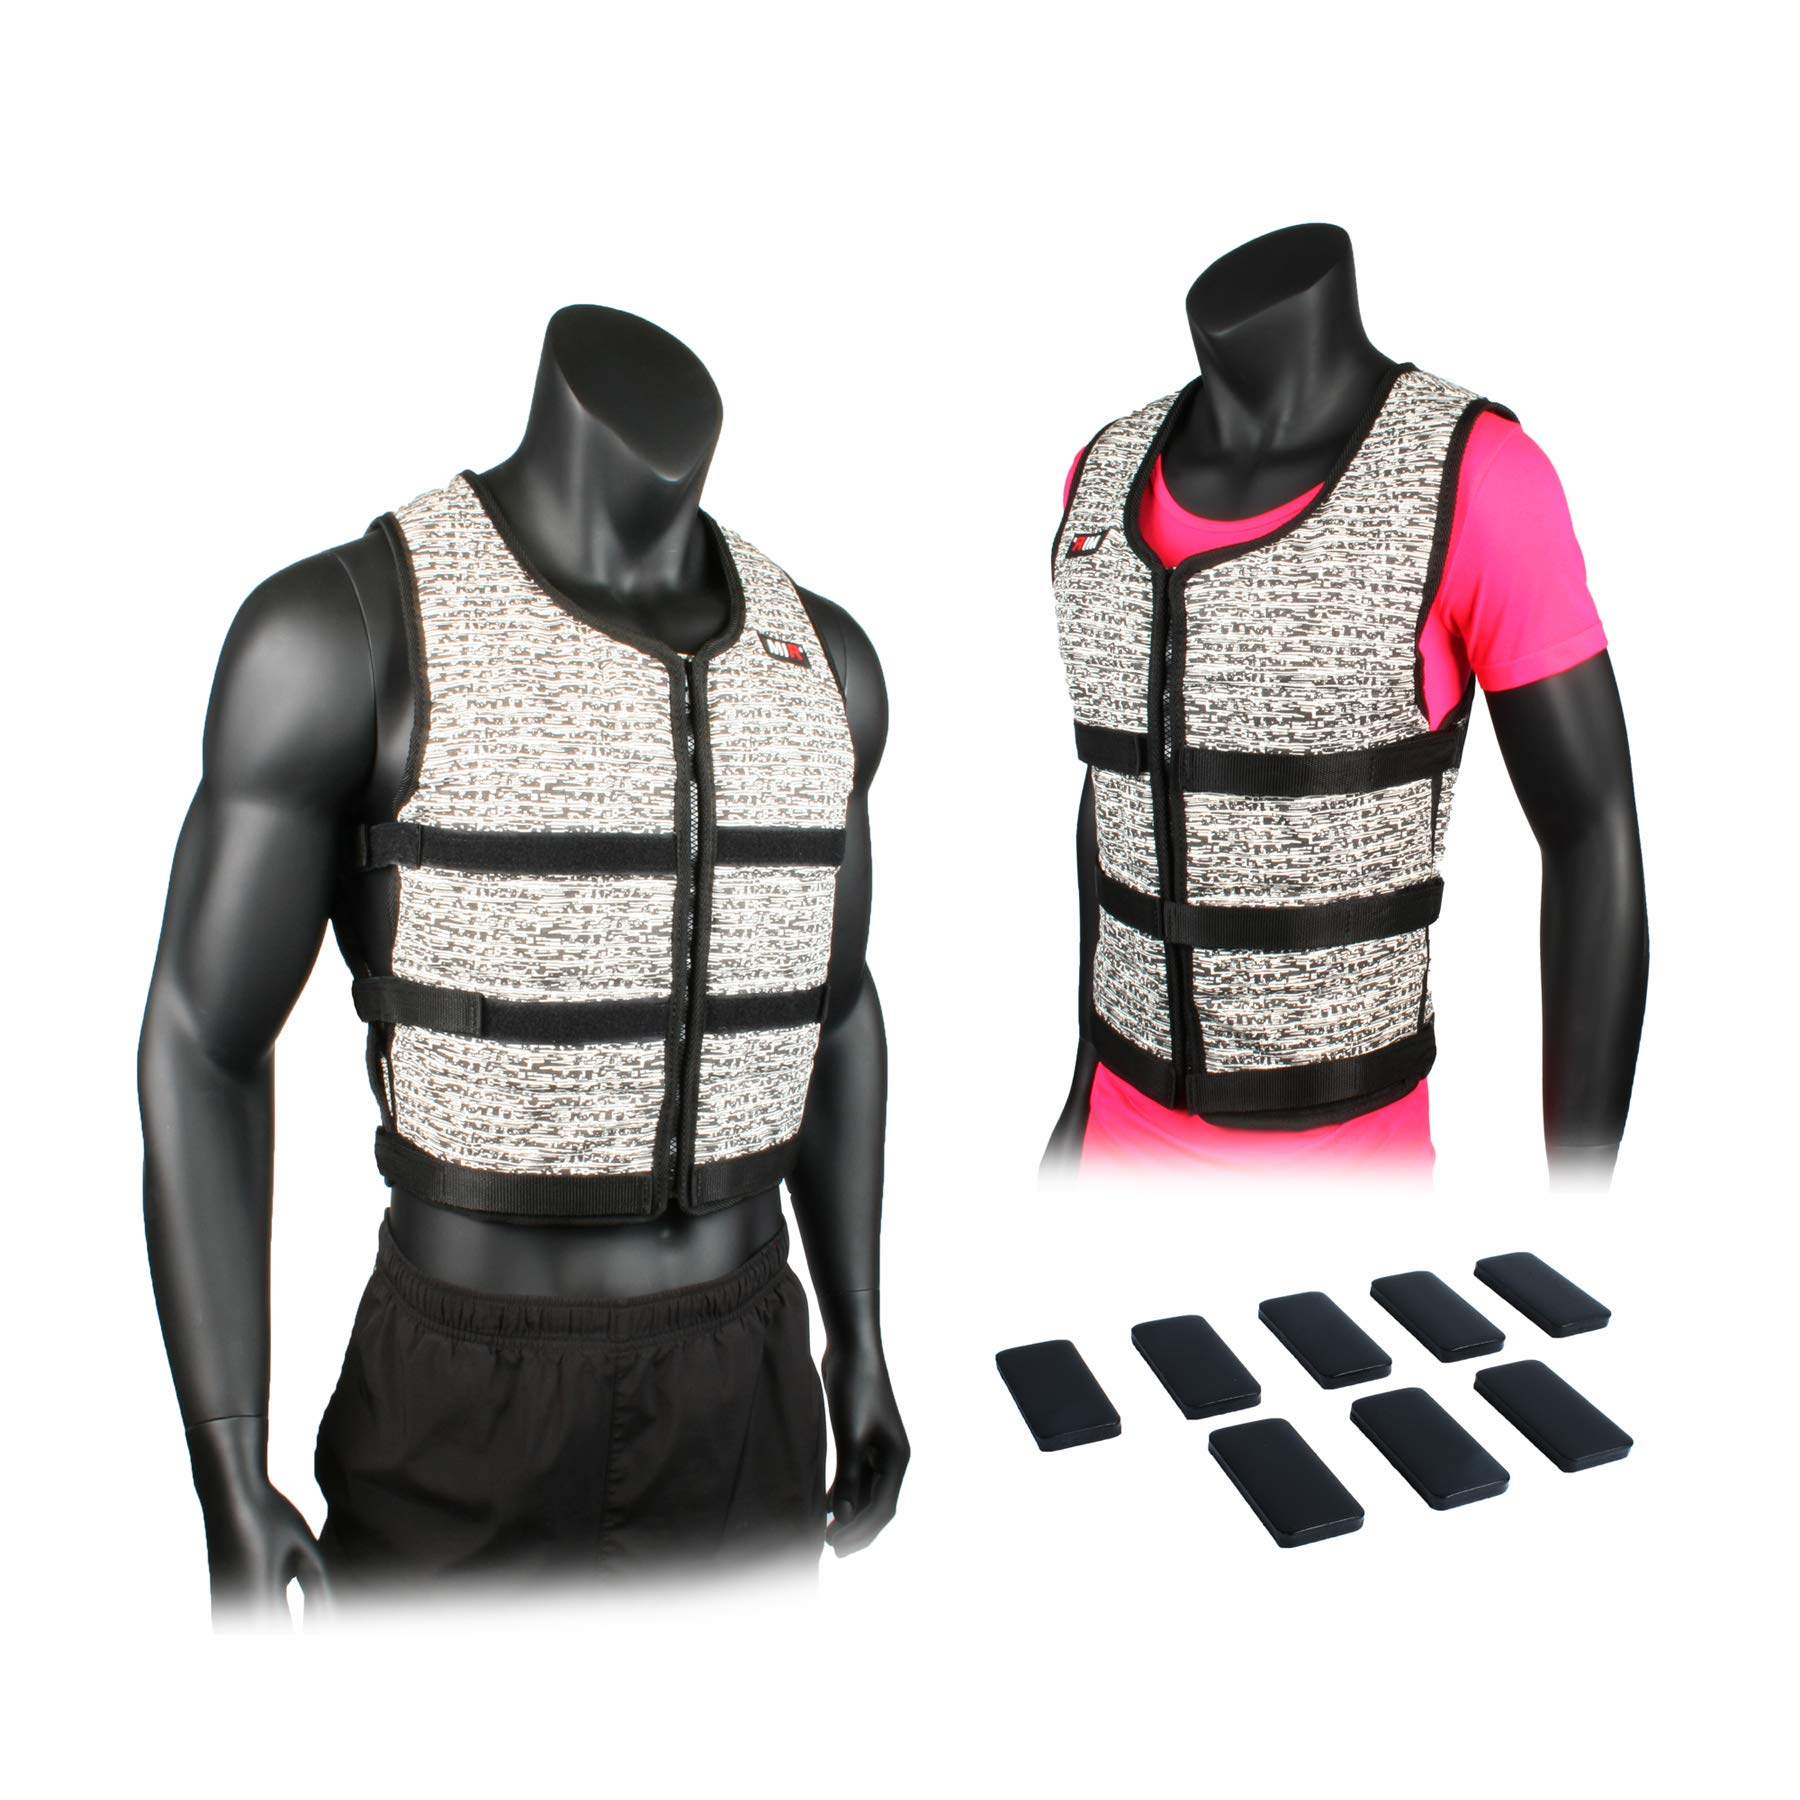 Mir Super Slim AIR Flow Adjustable Weighted Vest Machine Washable. for Men & Women (Black - 16LBS) by Mir (Image #1)